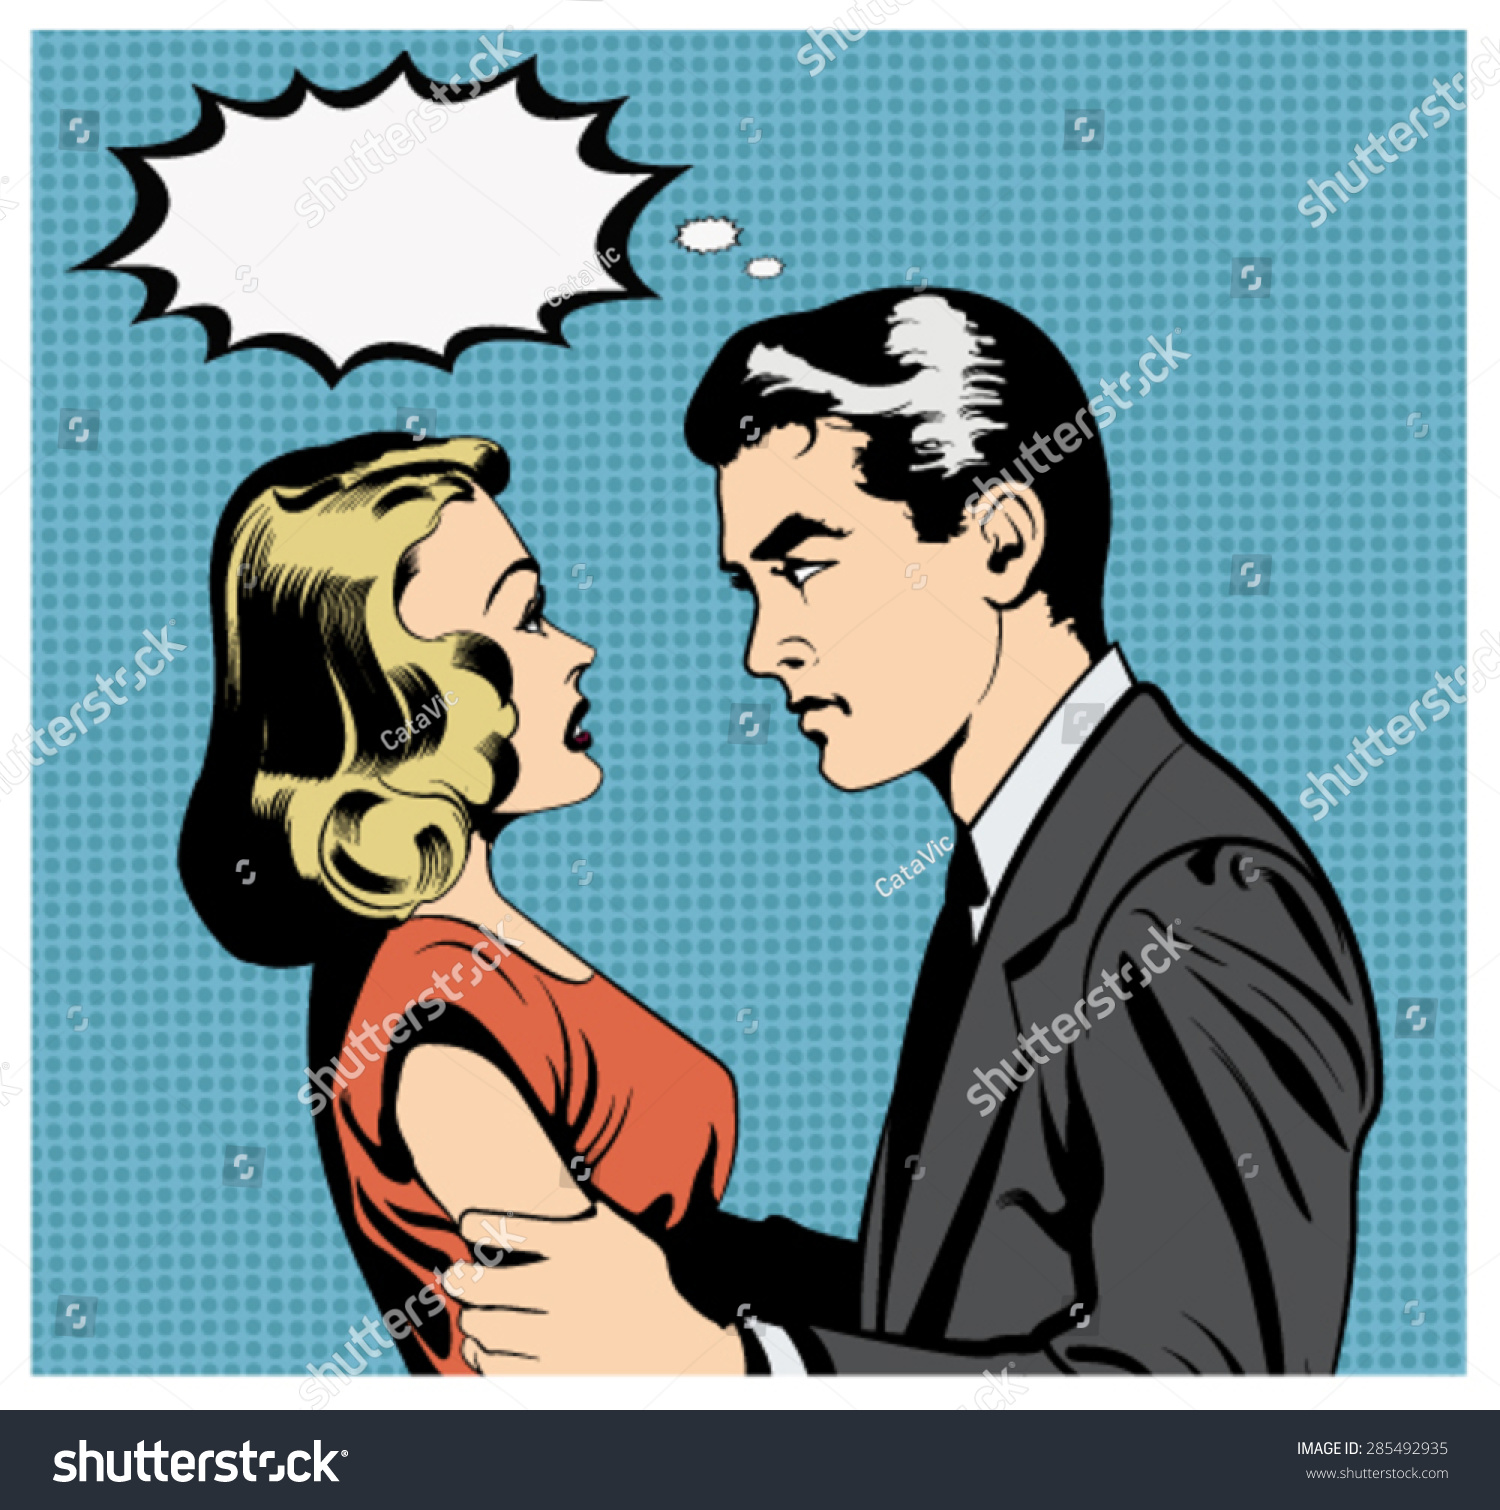 illustration couple arguing pop artcomic style stock vector royalty